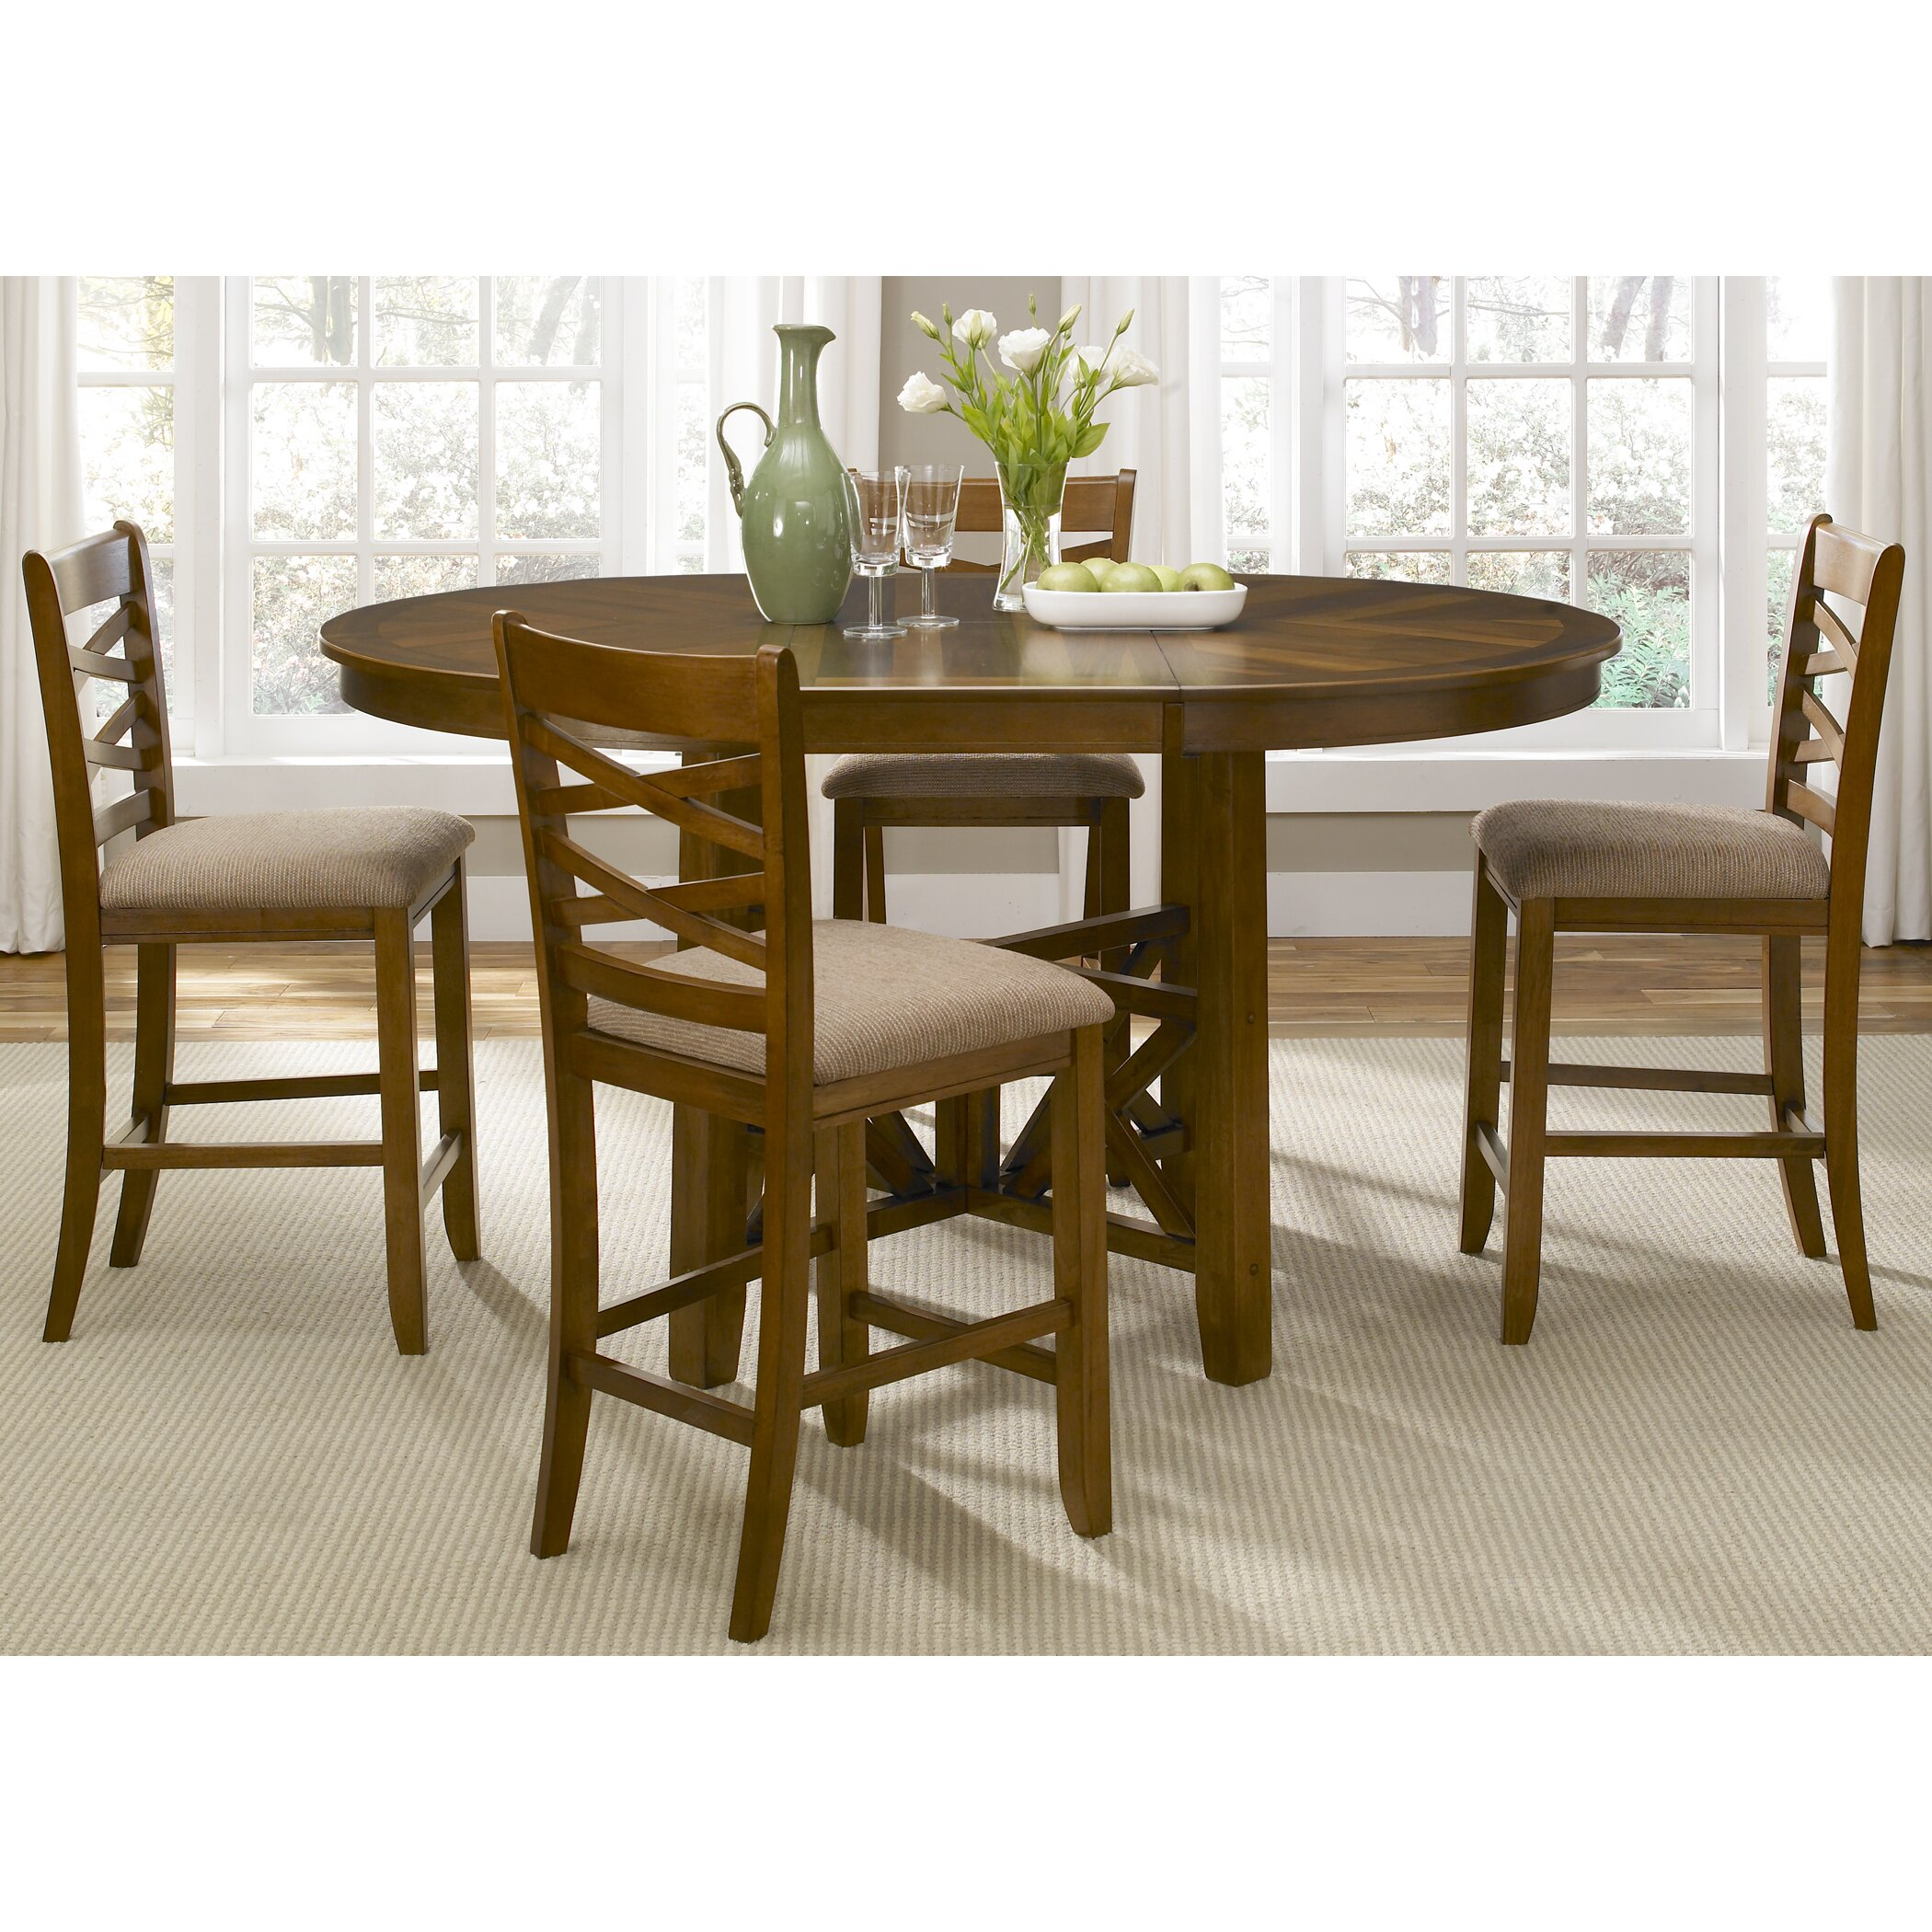 Liberty furniture bistro 5 piece dining set reviews for Breakfast sets furniture